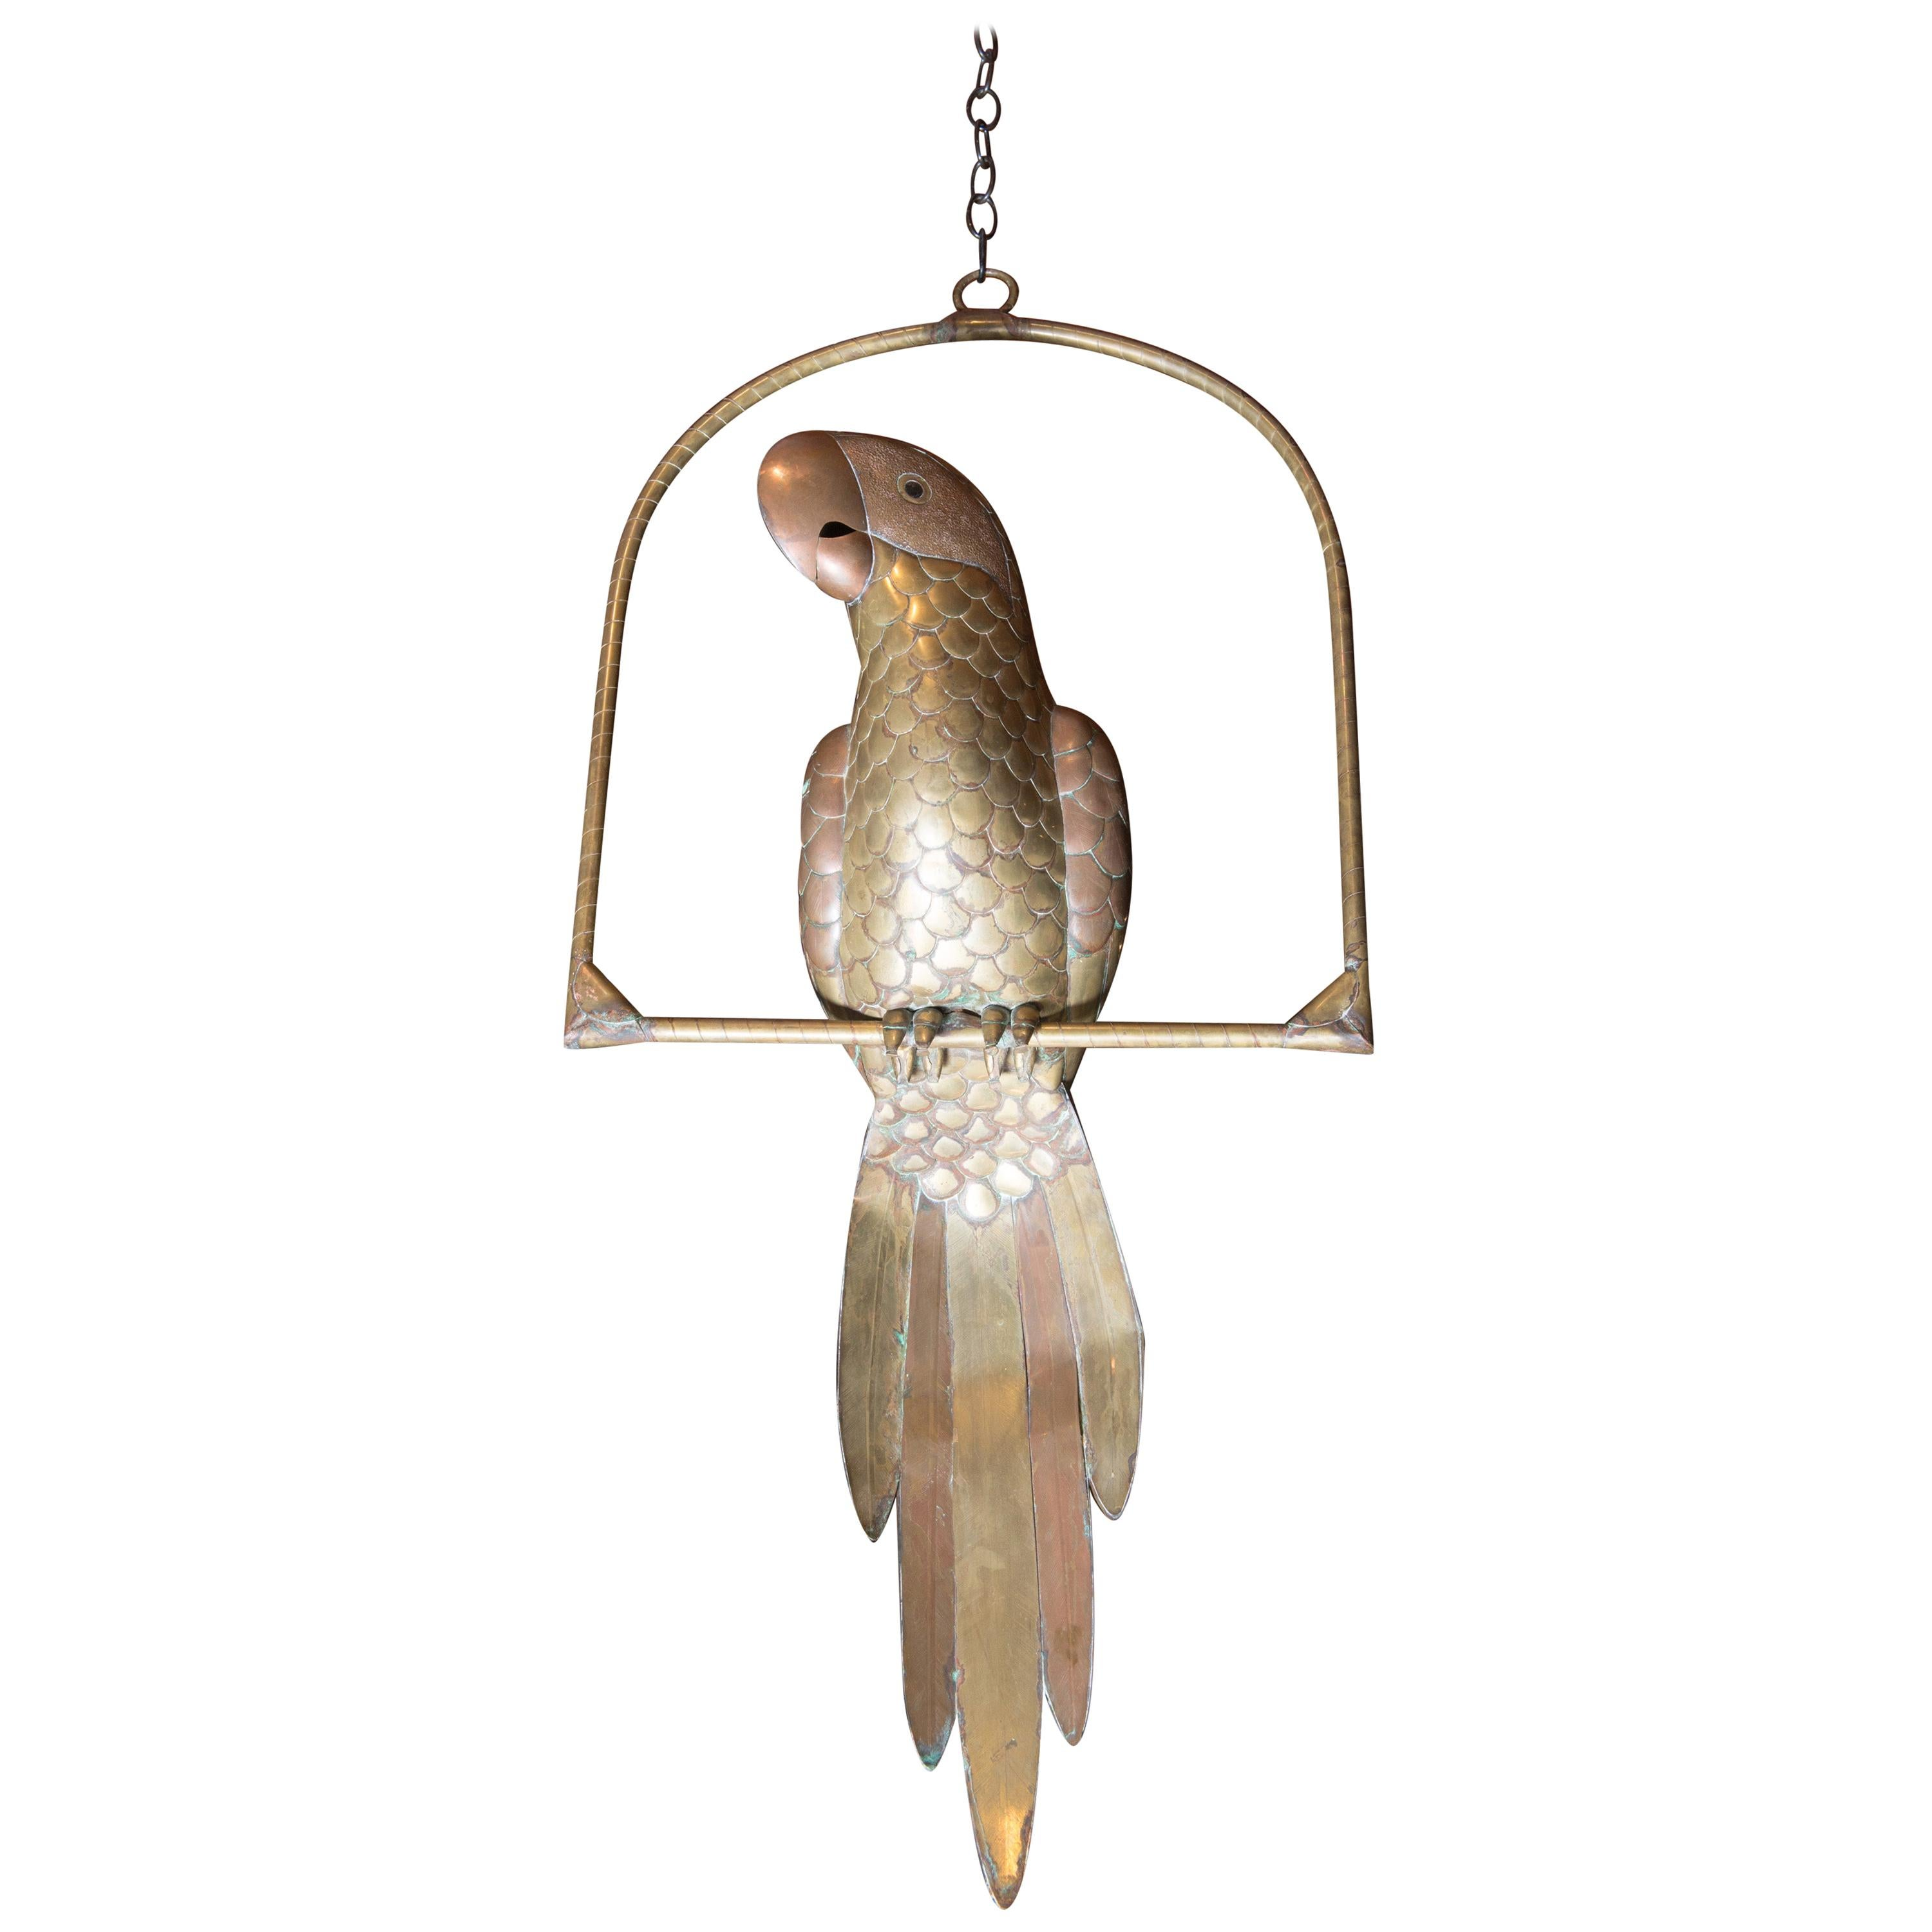 Sergio Bustamante Copper & Brass Parrot on a Swing